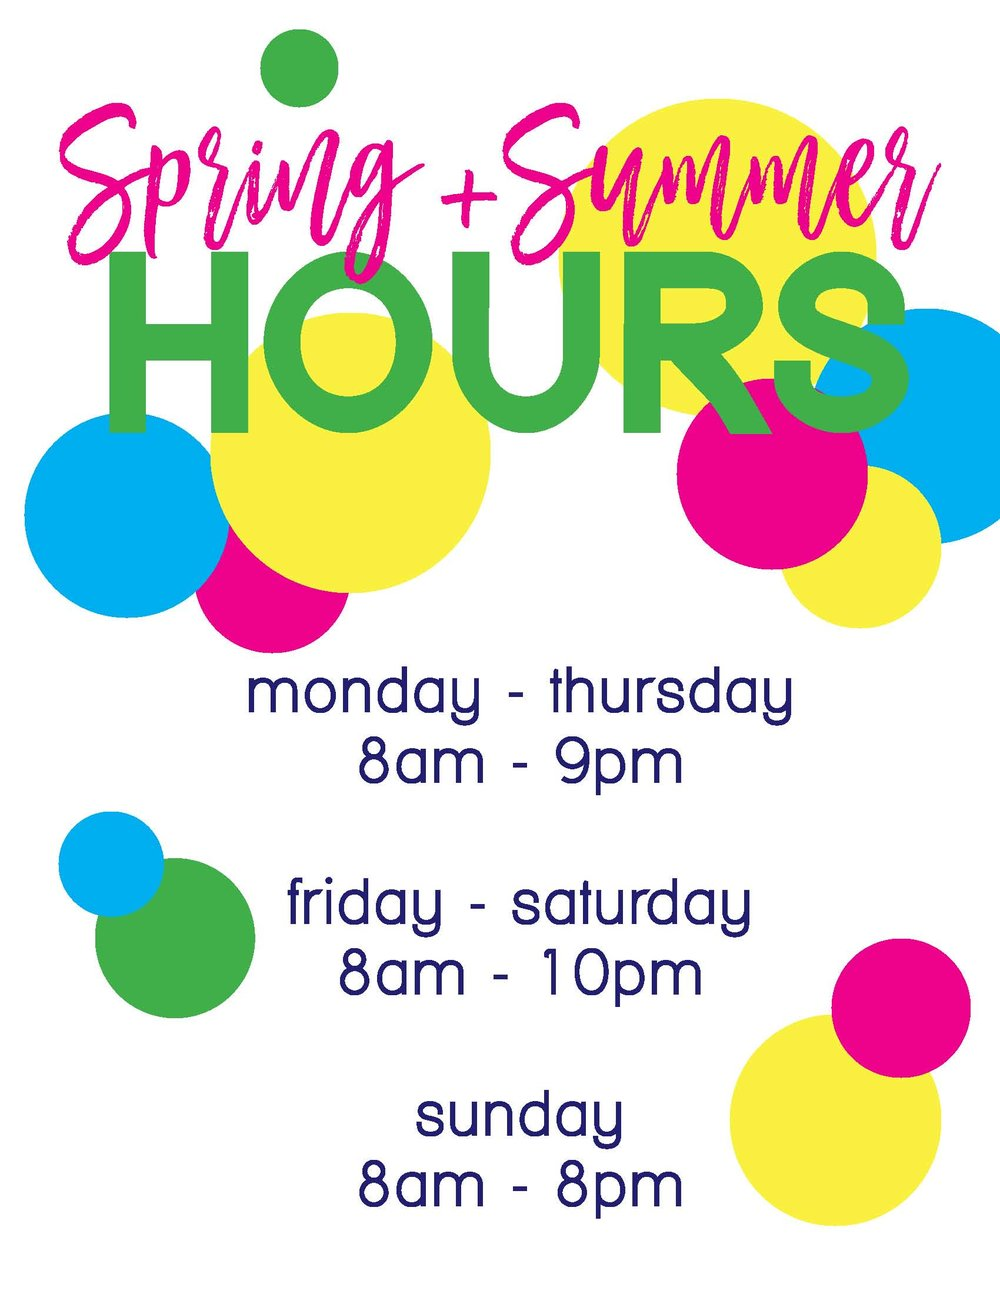 new spring + summer hours 2018.jpg